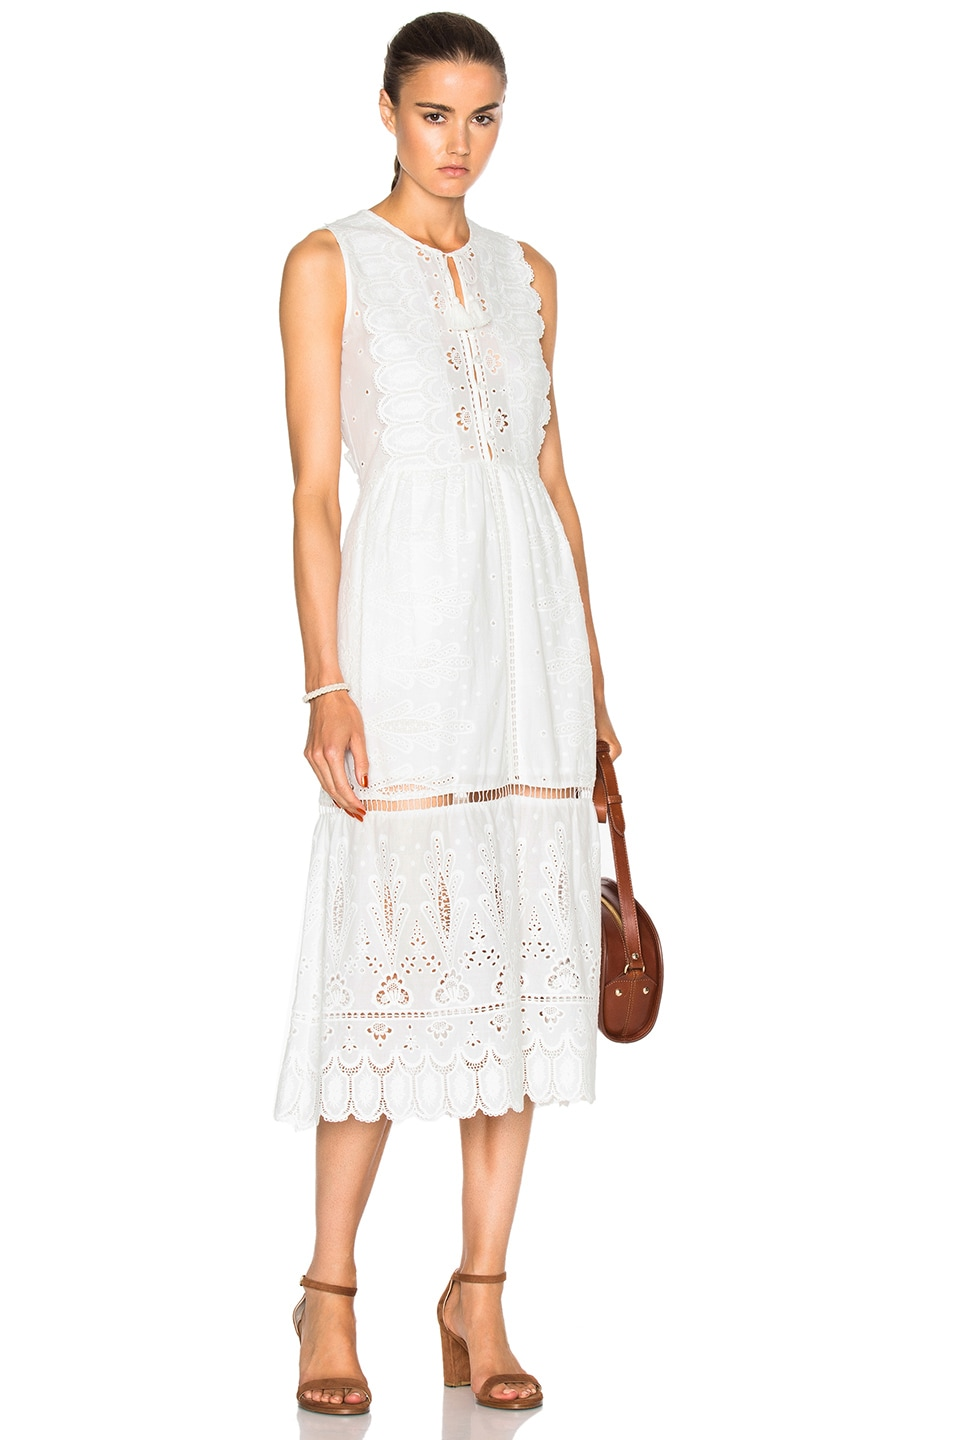 5e922690b0f8 Image 1 of Sea Floral Eyelet Maxi Dress in White